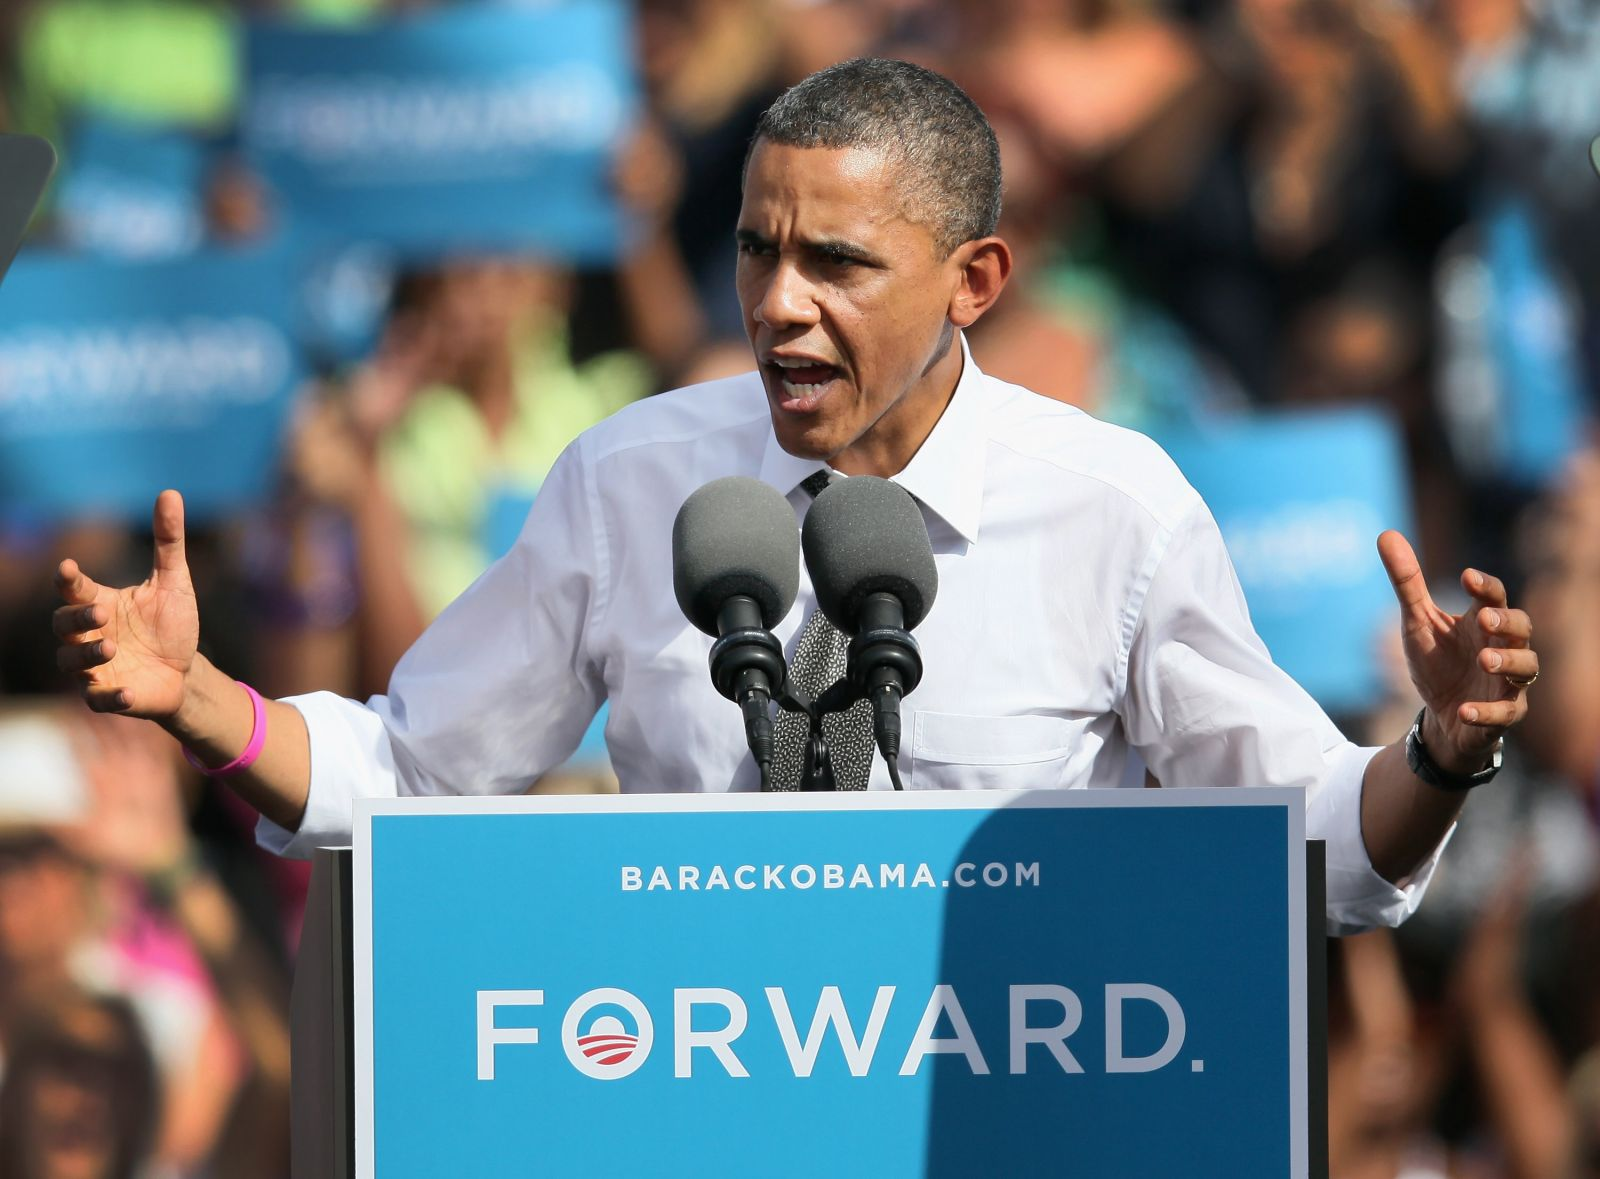 barack obamas policies on globalisation essay In his final year as the president of the united states, barack obama delivered a speech on gunsample essay on gun control speech delivered by barack obama.